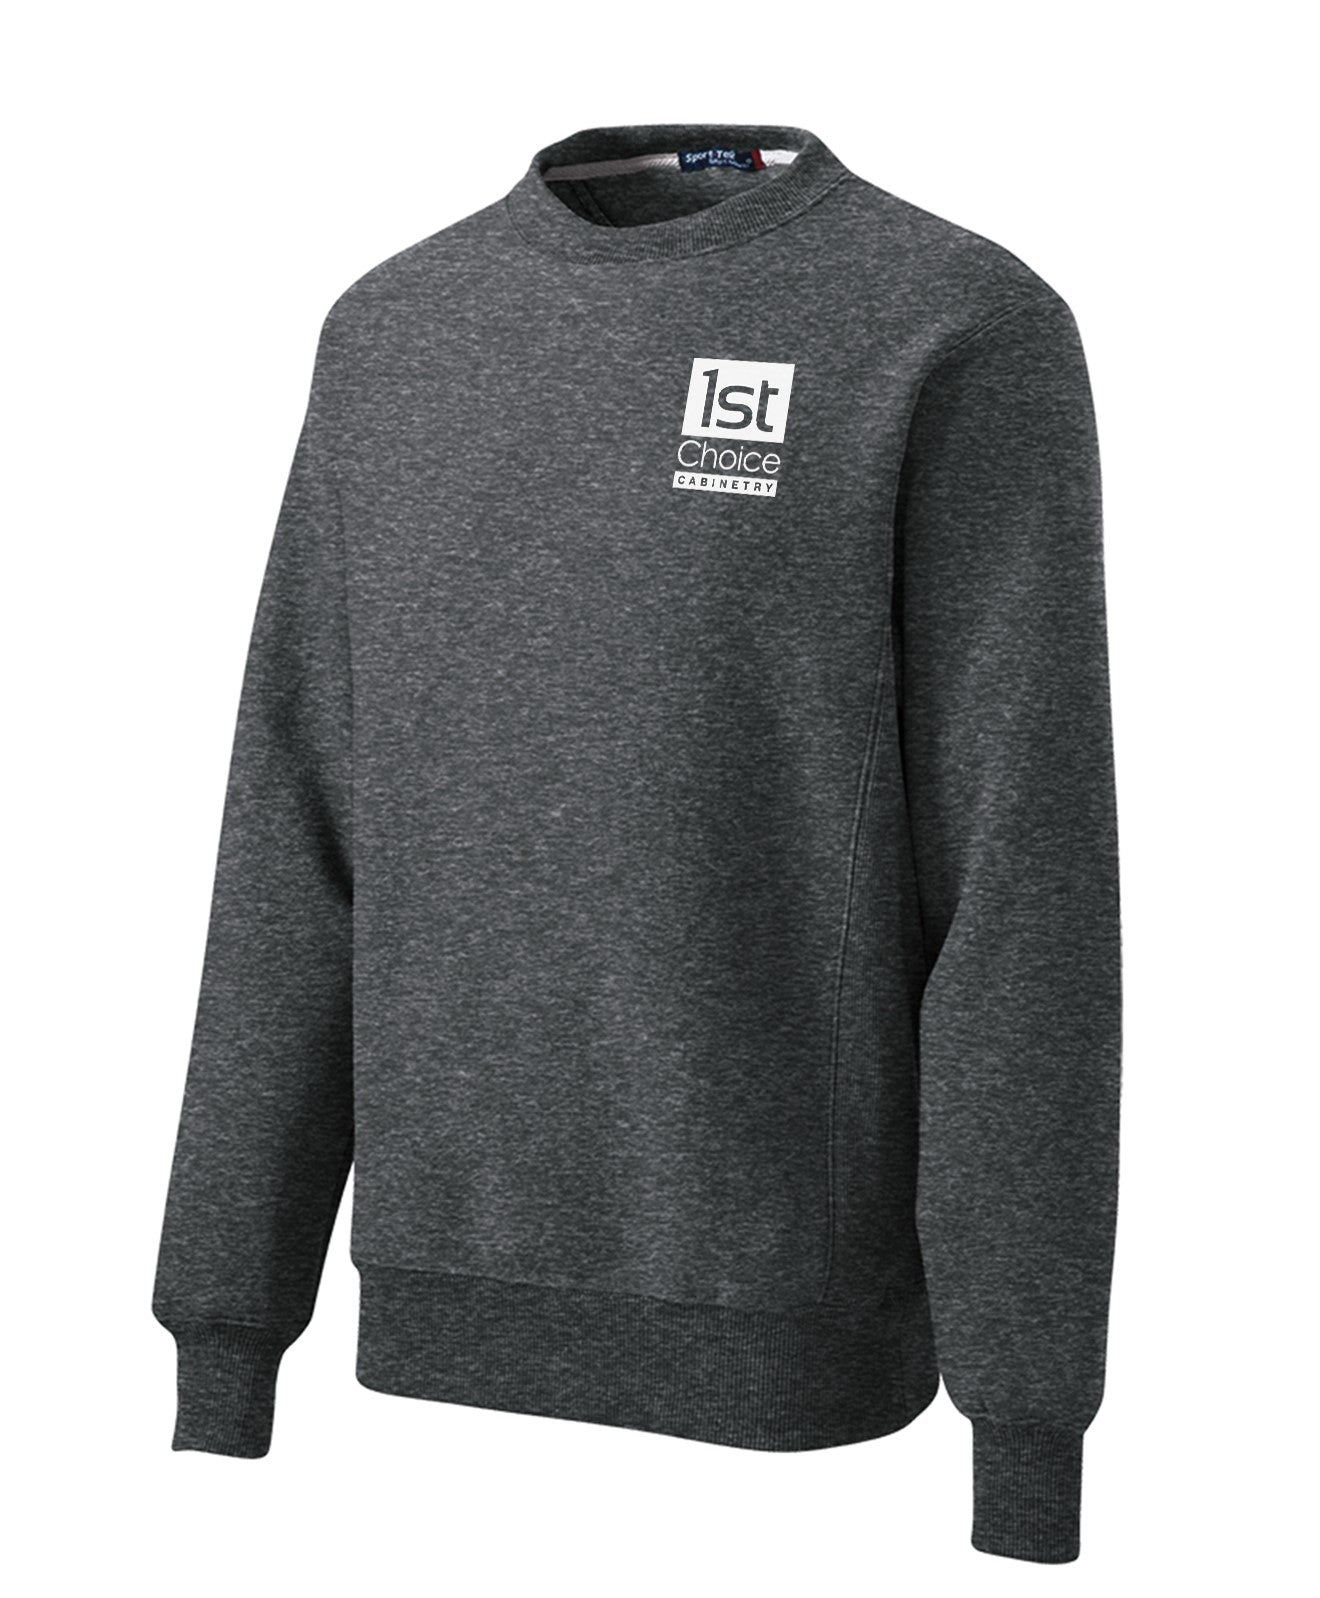 Men's Sport-Tek Super Heavyweight Crewneck Sweatshirt